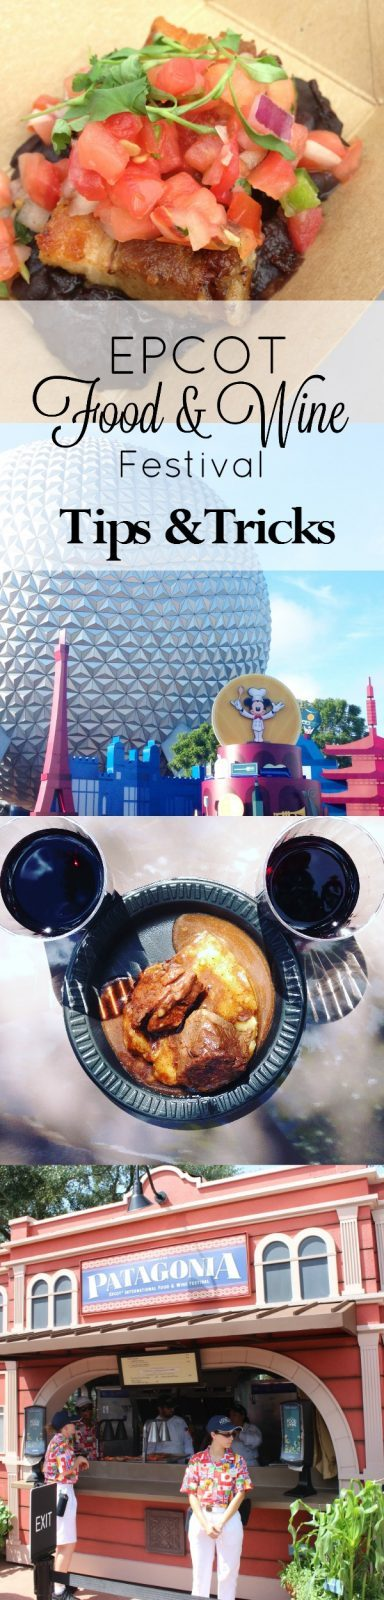 Tips & tricks for making the most of Epcot Food & Wine Festival! How to prepare for a visit to the International Food & Wine Fest, including how to not wait in line at the booths and how to stay cool!